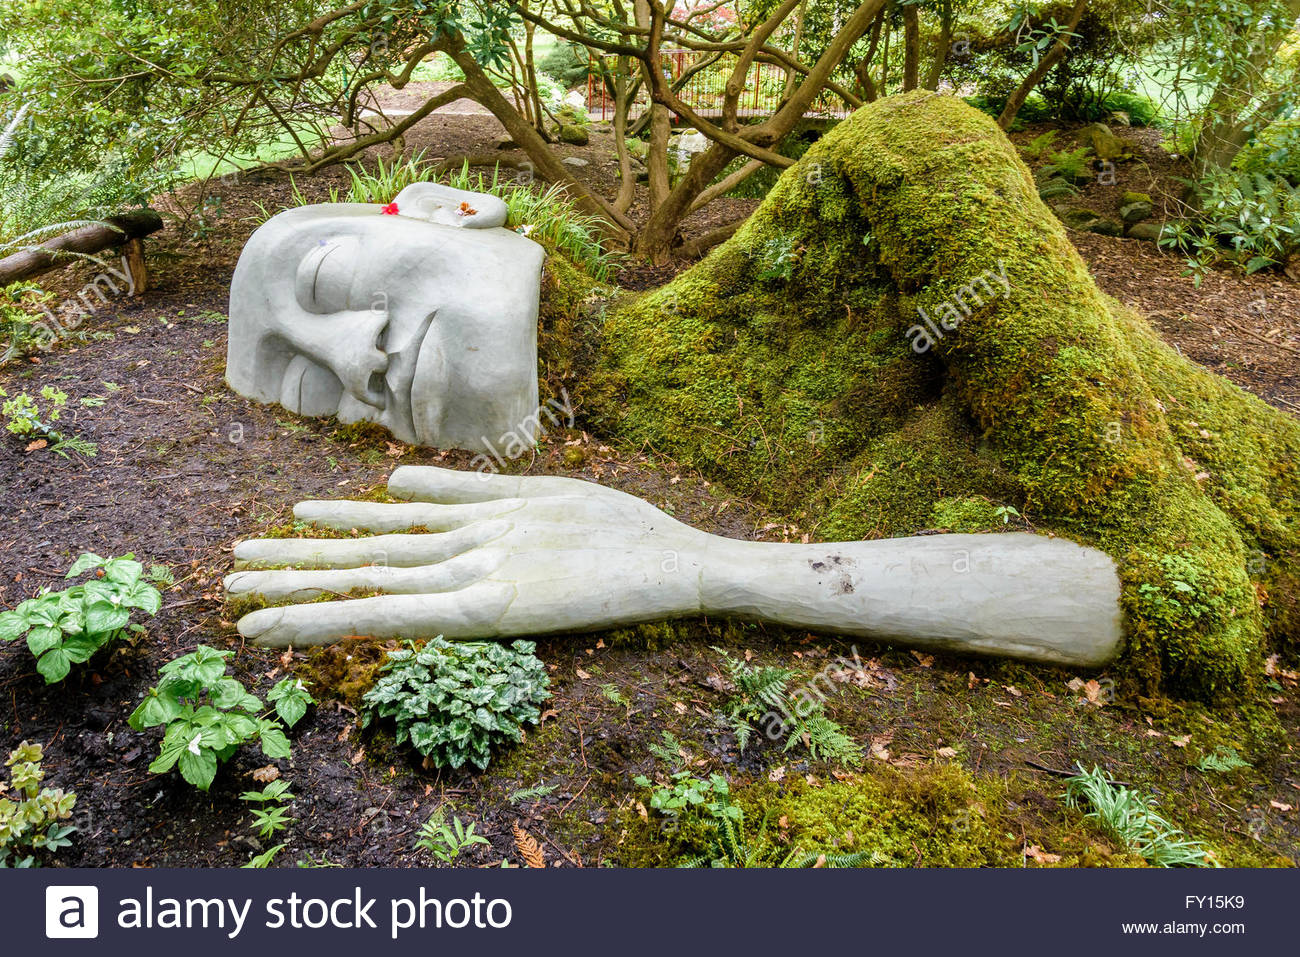 The Moss Lady, Beacon Hill Park, Victoria, British Columbia, Canada - Stock Image